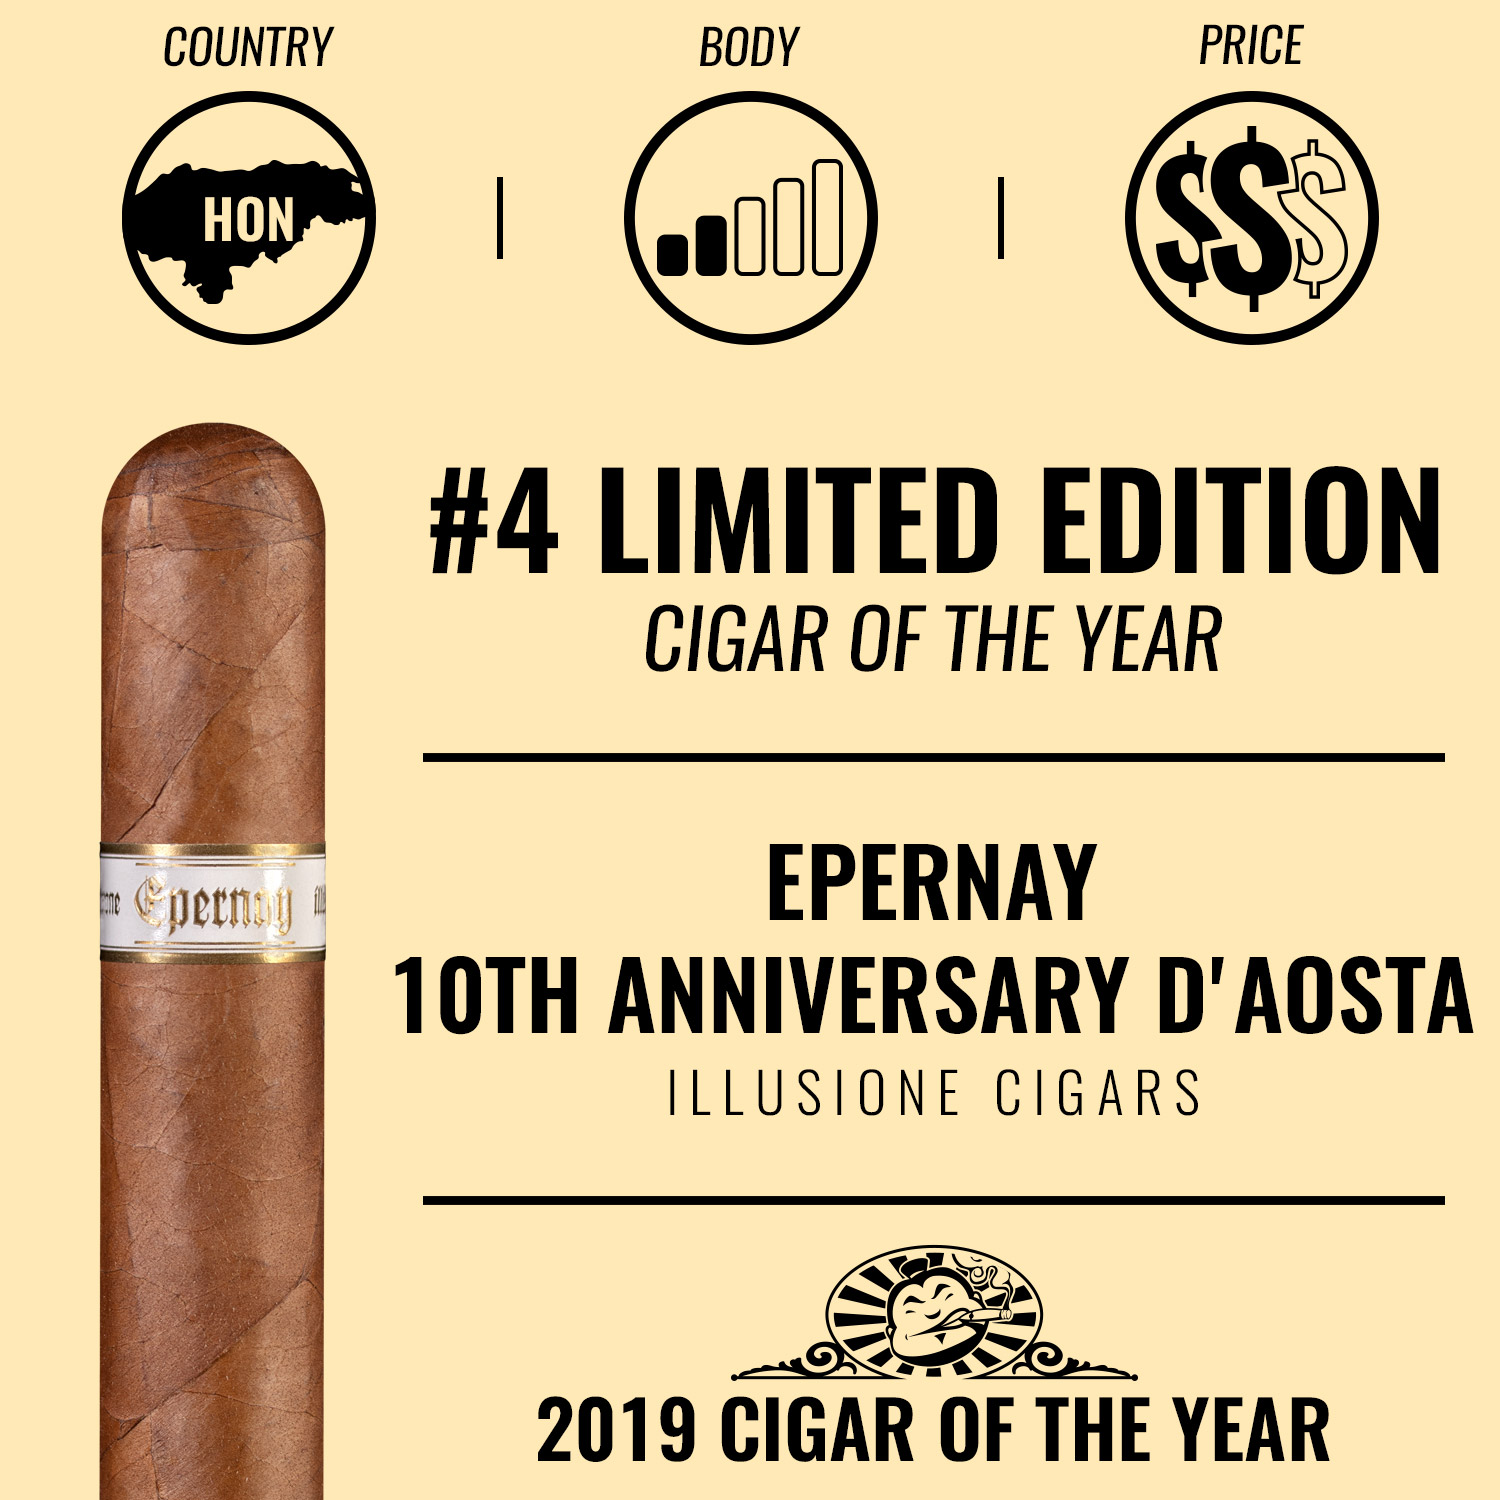 Illusione Epernay 10th Anniversary d'Aosta No. 4 Limited Edition Cigar of the Year 2019